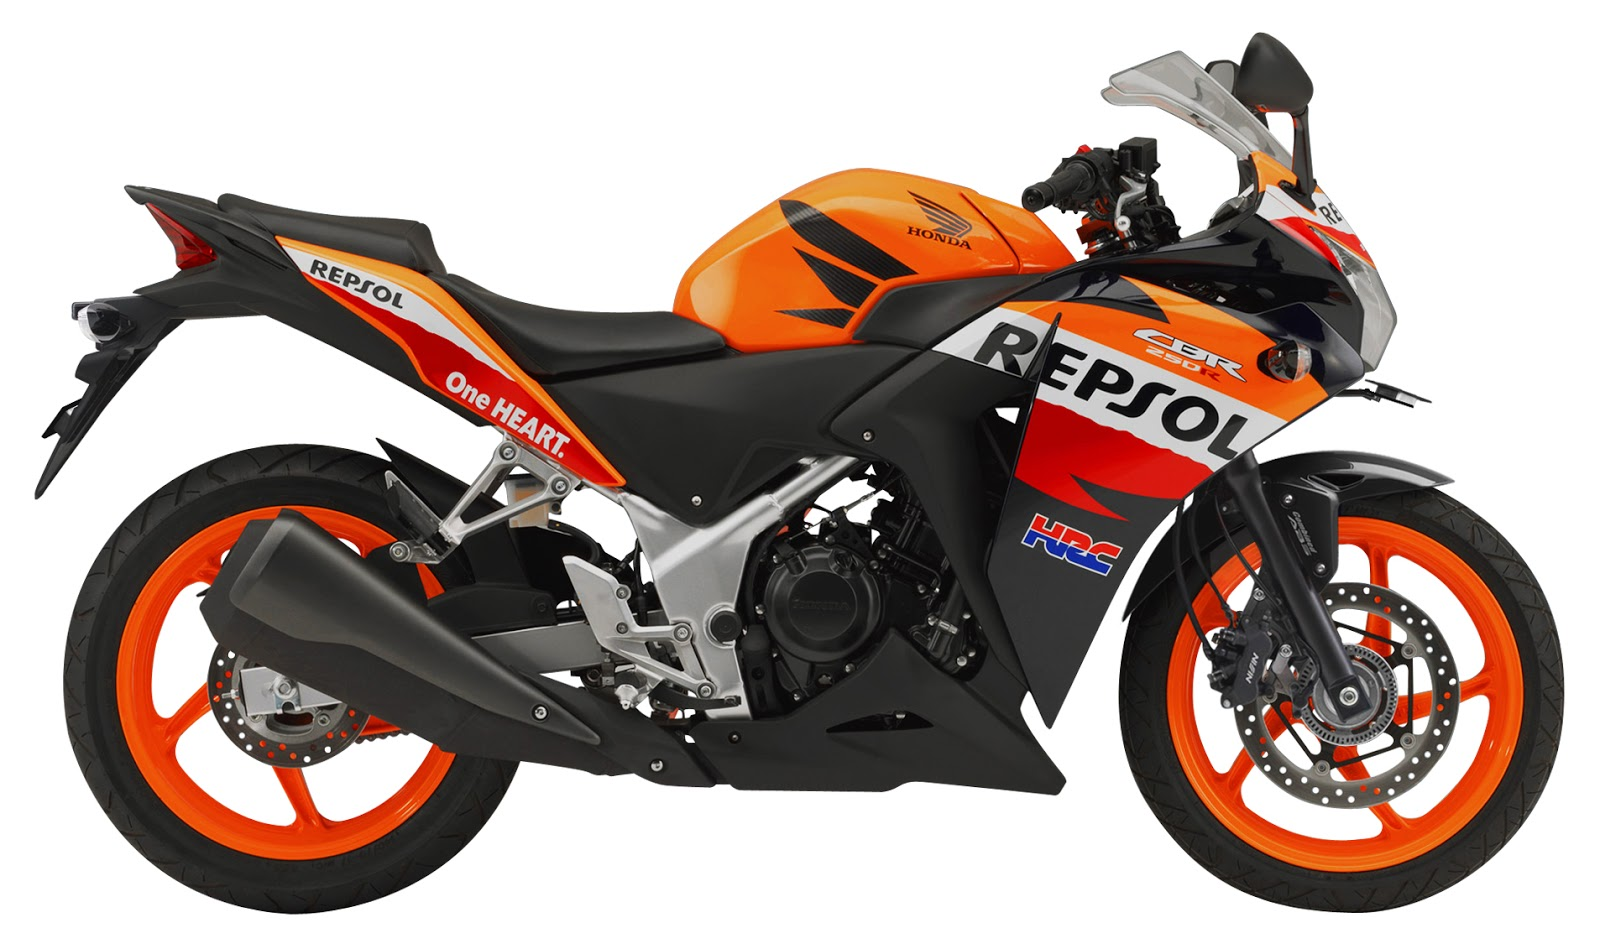 hd wallon  Wallpaper Repsol Honda Cbr